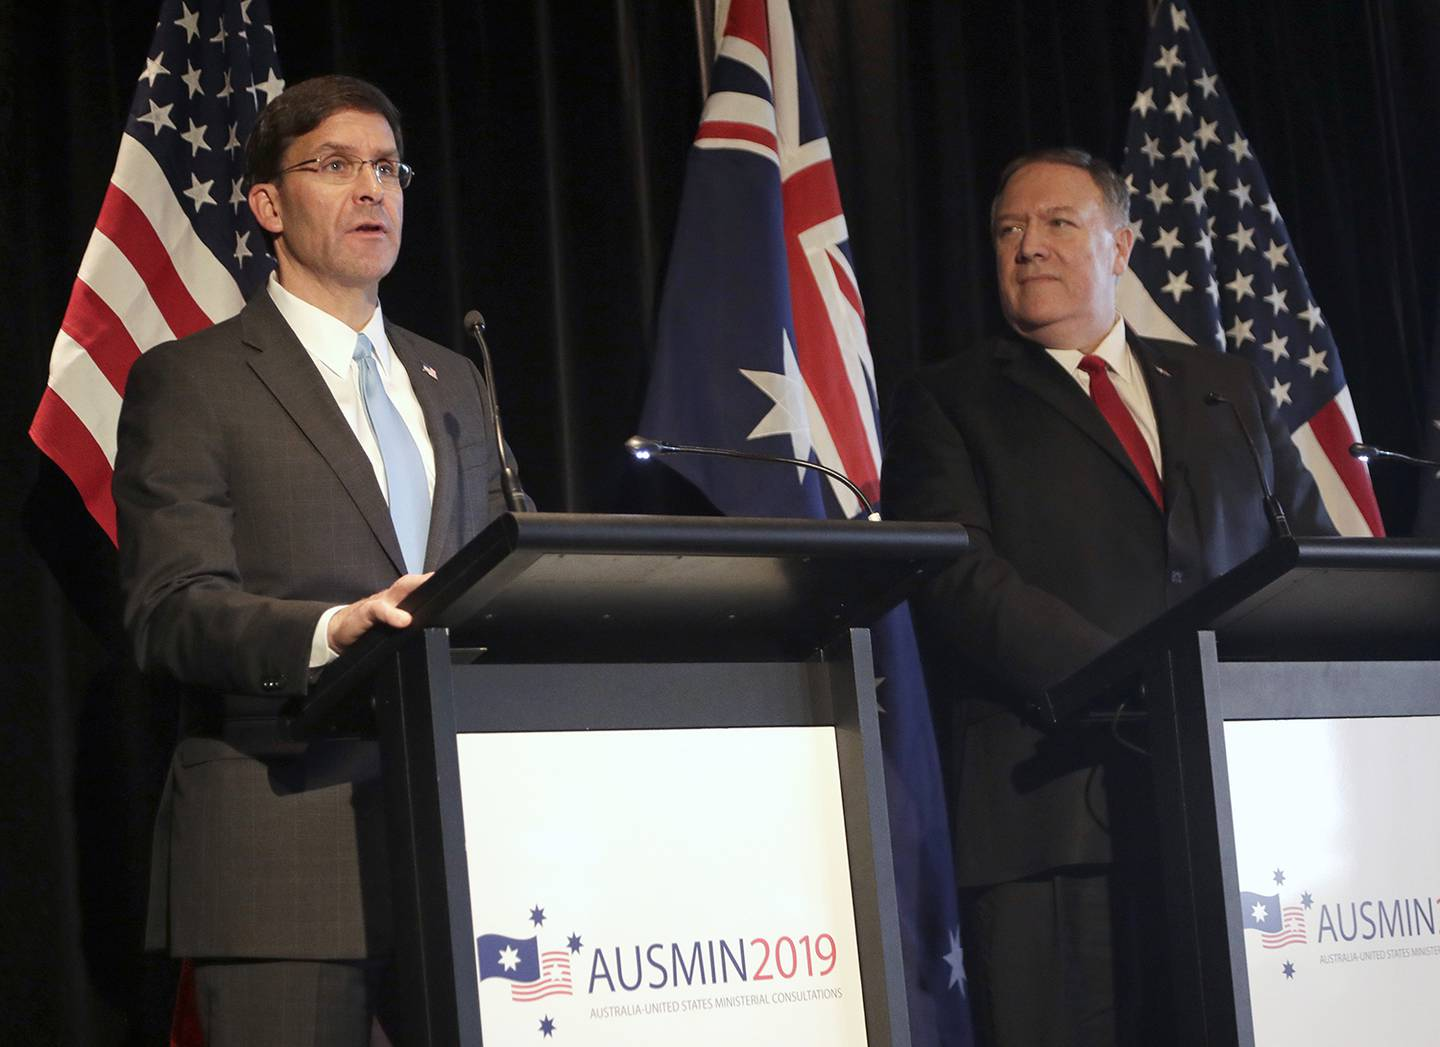 U.S. Secretary of Defense Mark Esper, left, and U.S. Secretary of State Mike Pompeo brief the media at a press conference following annual bilateral talks with Australian counterparts in Sydney, Australia, Sunday, Aug. 4, 2019.